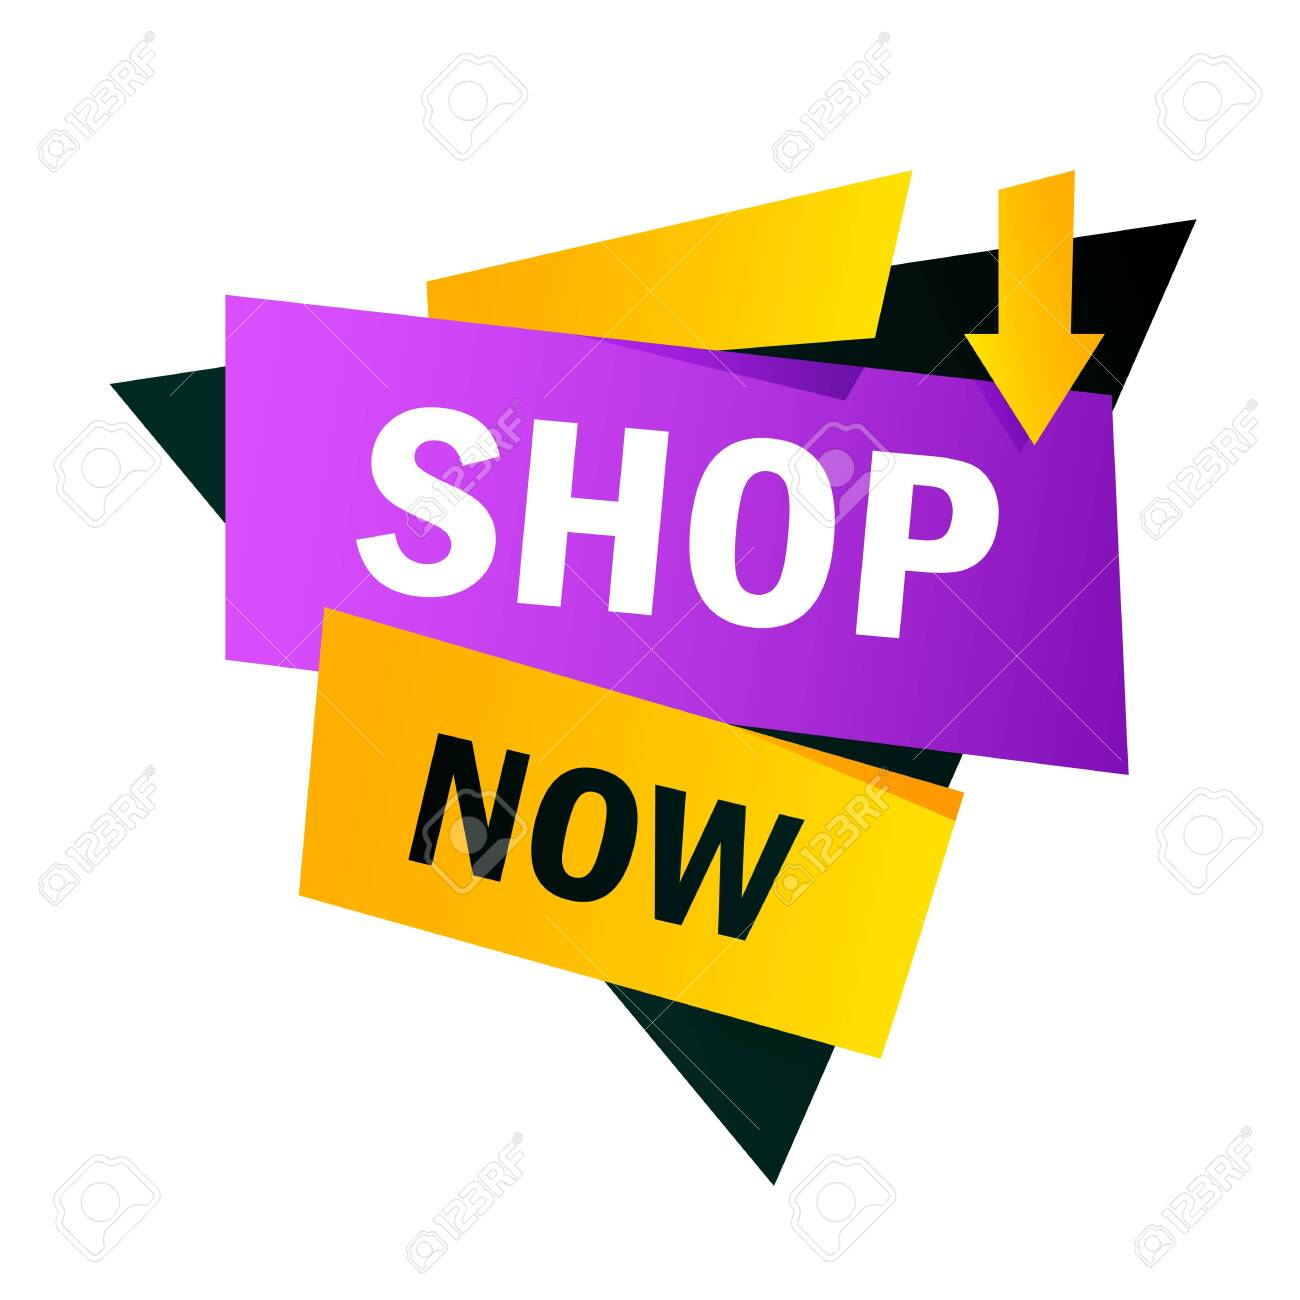 Shop now yellow and purple bright banner design. Triangle and arrow shape vector illustration. Abstract graphic element with text. Template for promotion poster, advertising label or flyer - 136437893